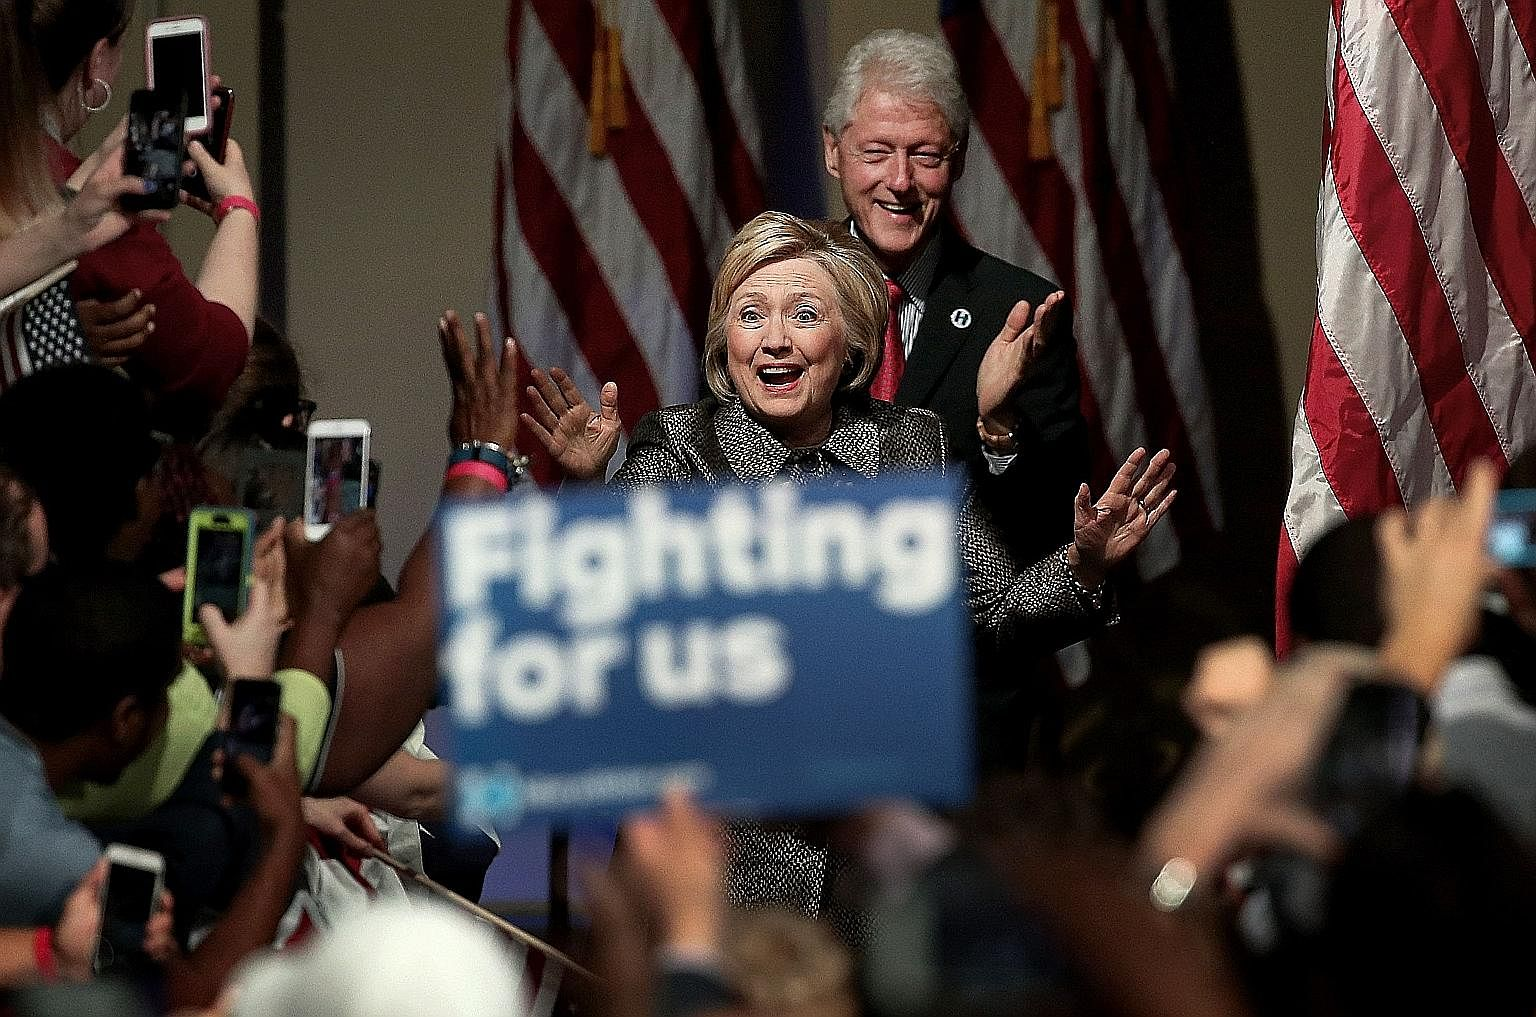 Mrs Hillary Clinton arriving with her husband, former president Bill Clinton, at a campaign event in Philadelphia last month. Mr Clinton's years in office were marked by a very impressive economic boom.